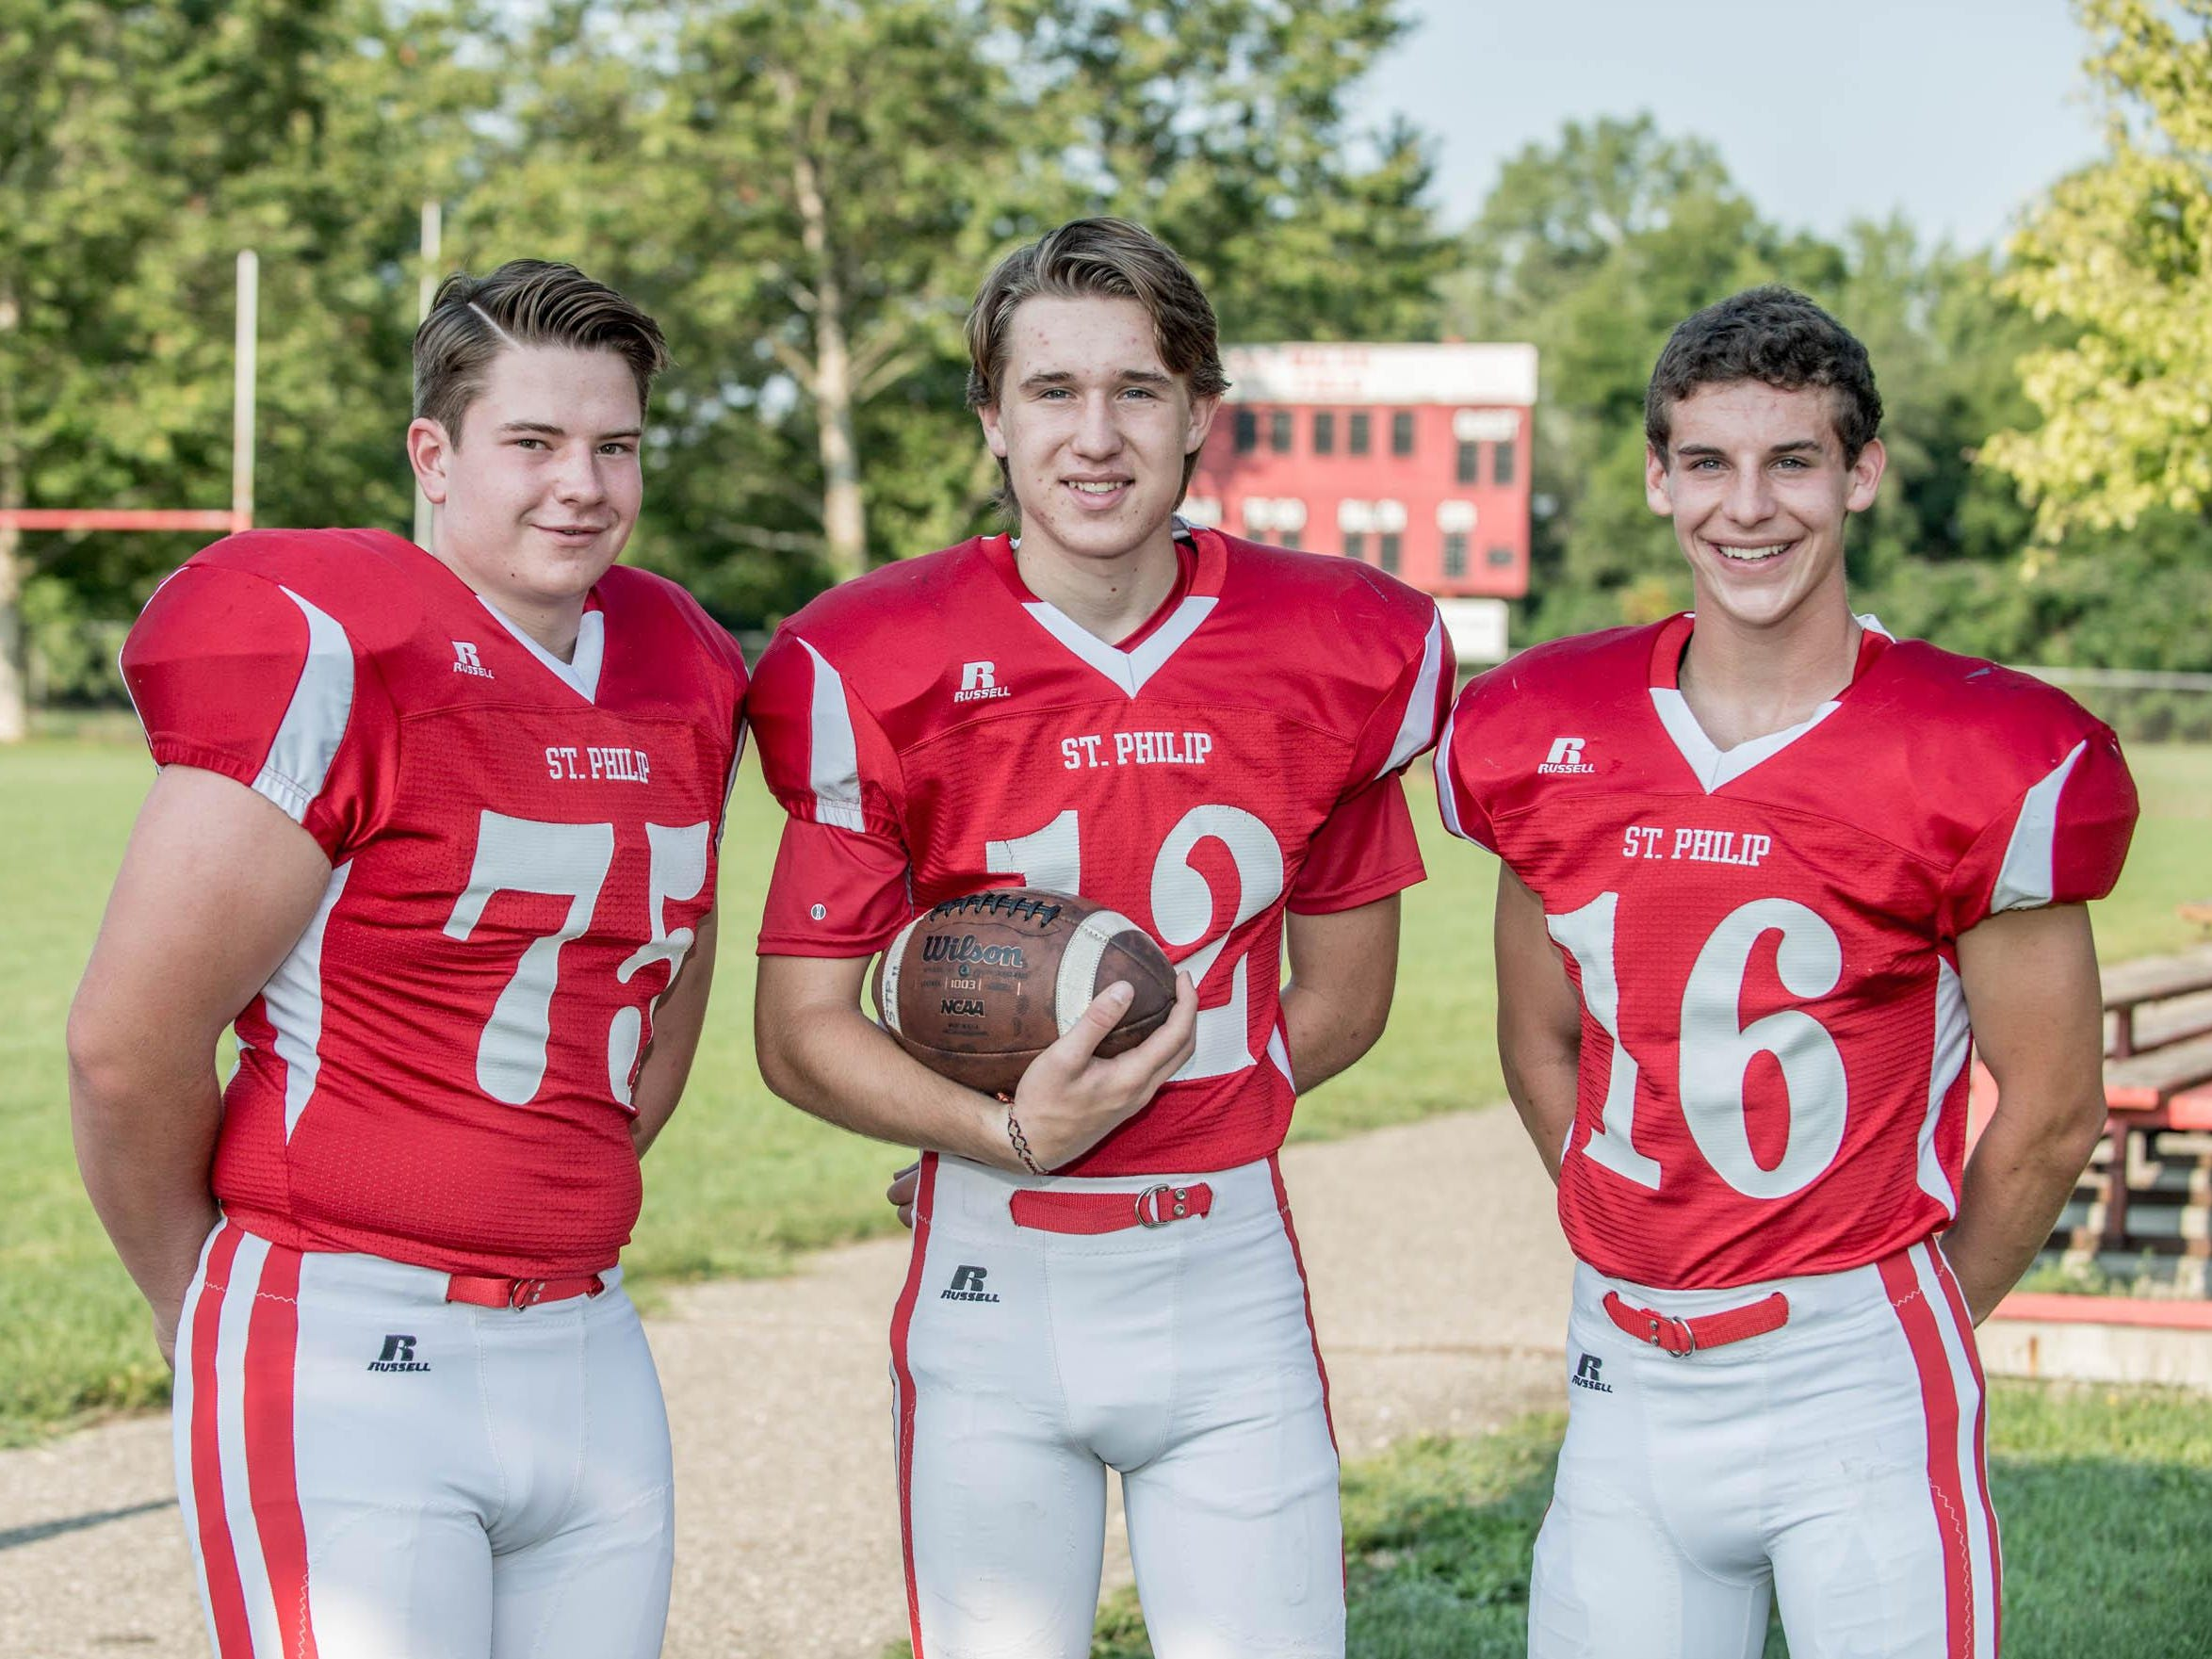 St. Philip is hoping for more success in 8-man football behind senior leaders, from left, Noah Ellinger, Drew Lantinga and Grayson Obey.